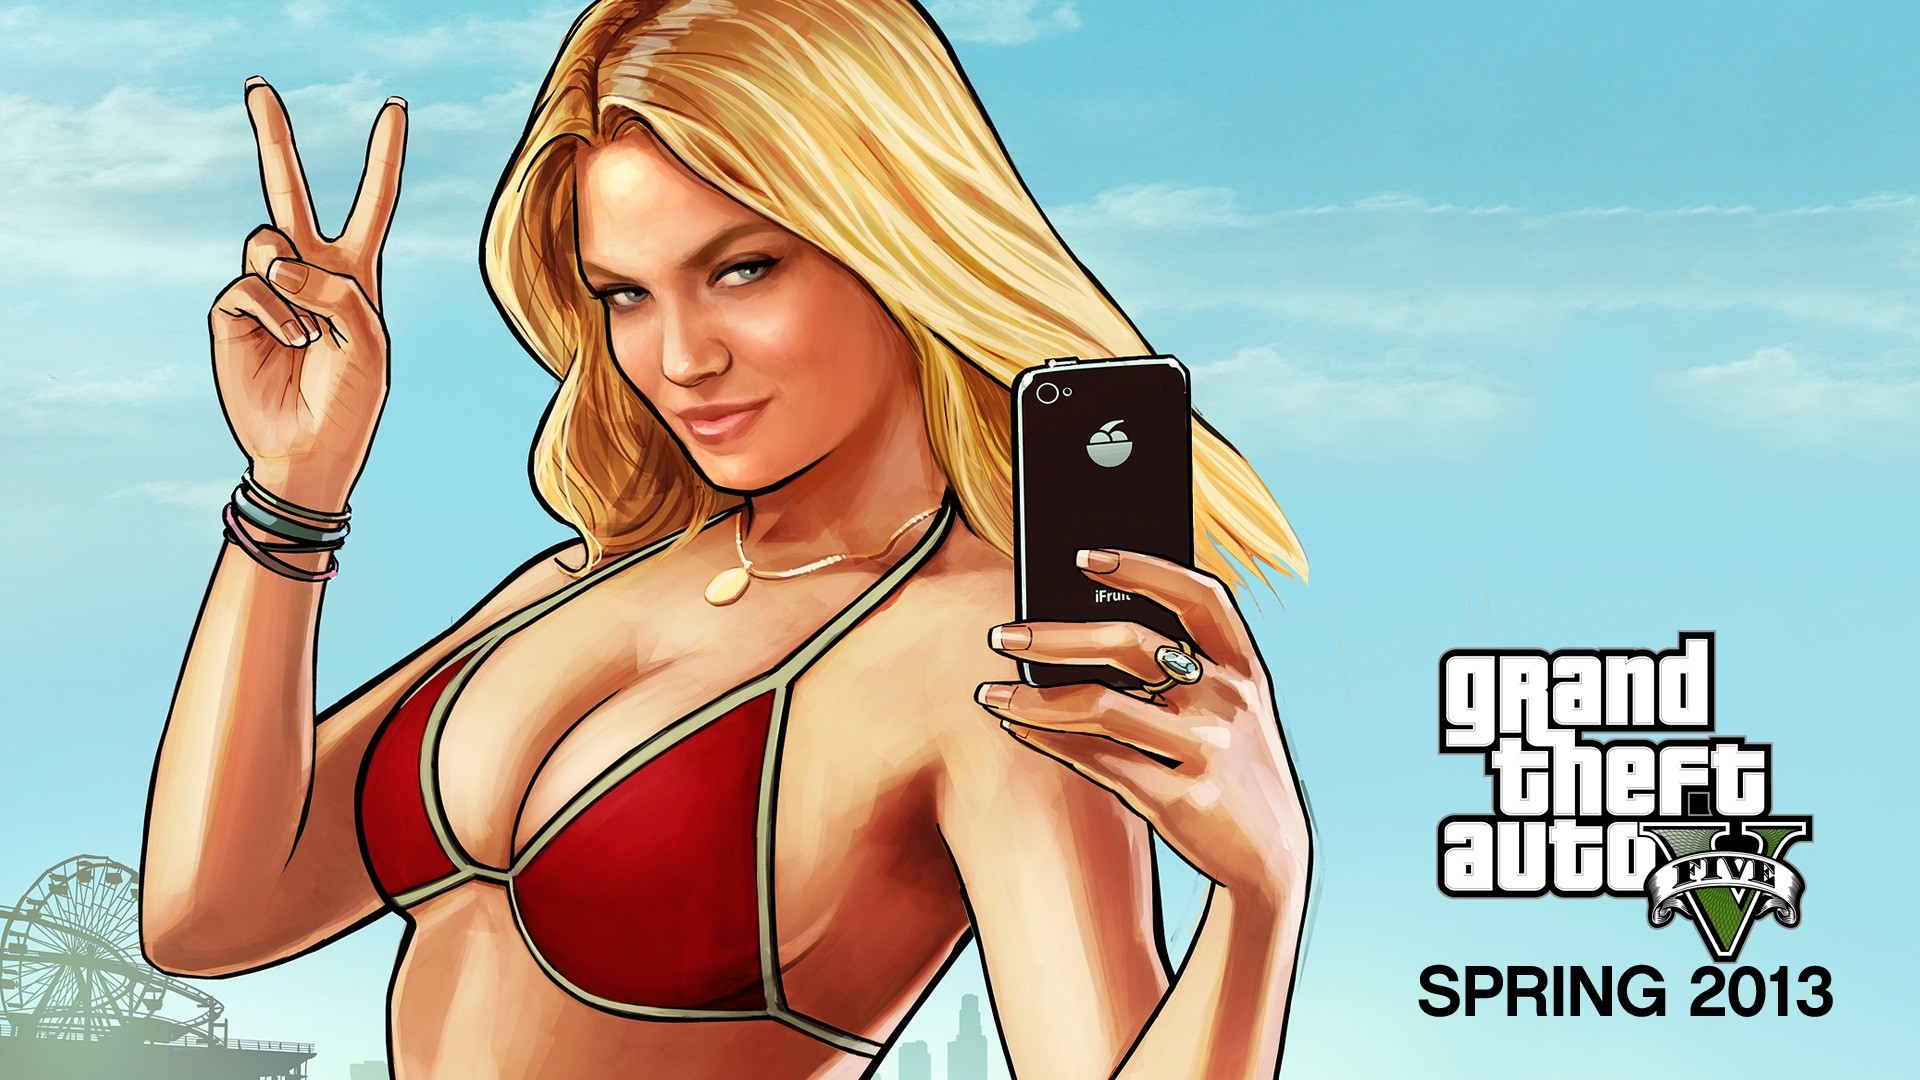 Grand Theft Auto V GTA 5 HD game wallpapers #5 – 1920×1080.